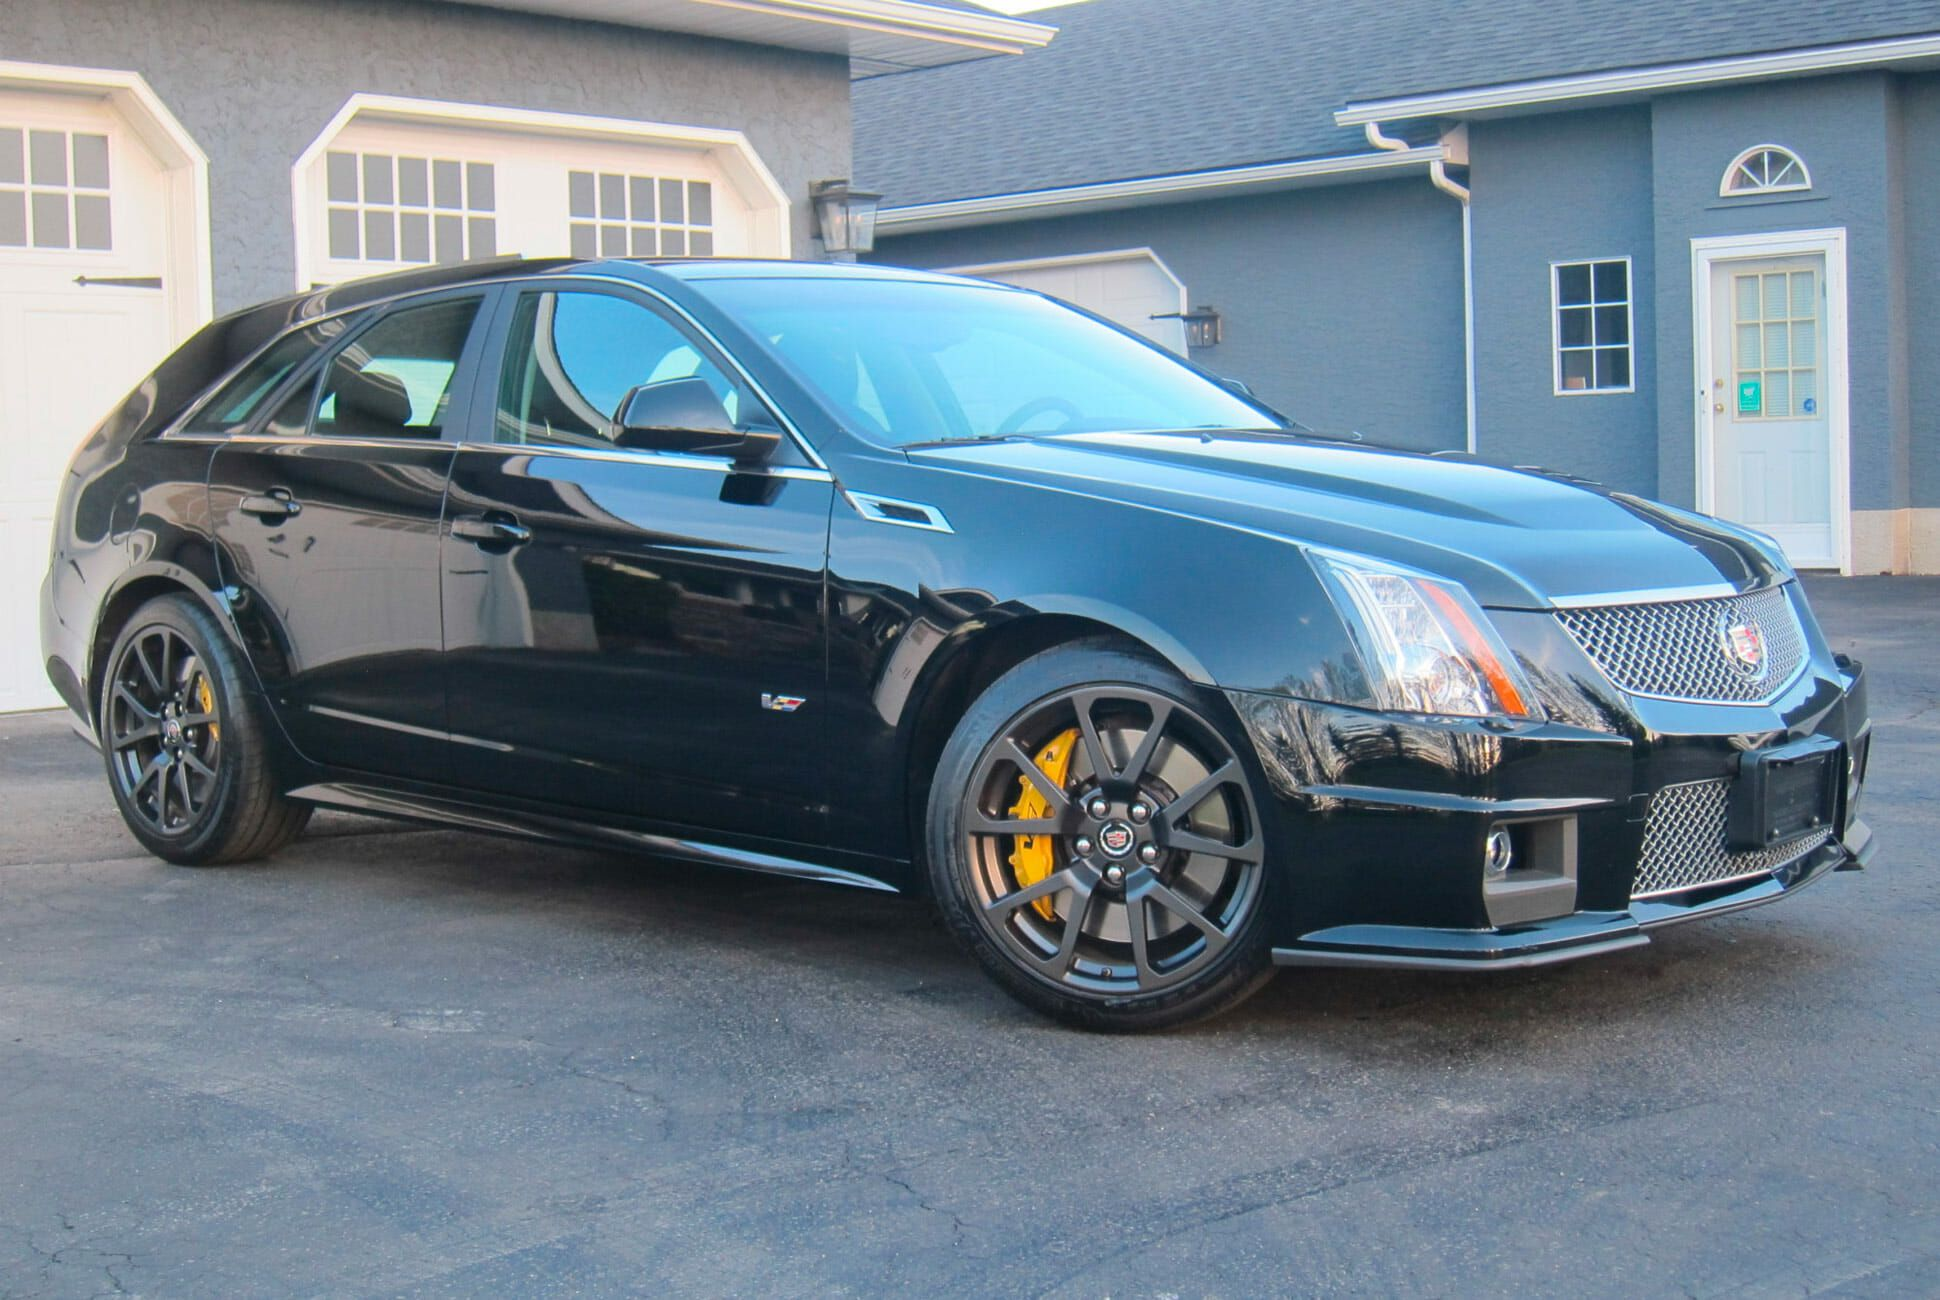 Cadillac Cts Wagon For Sale >> Now S Your Chance To Grab One Of The Greatest Station Wagons